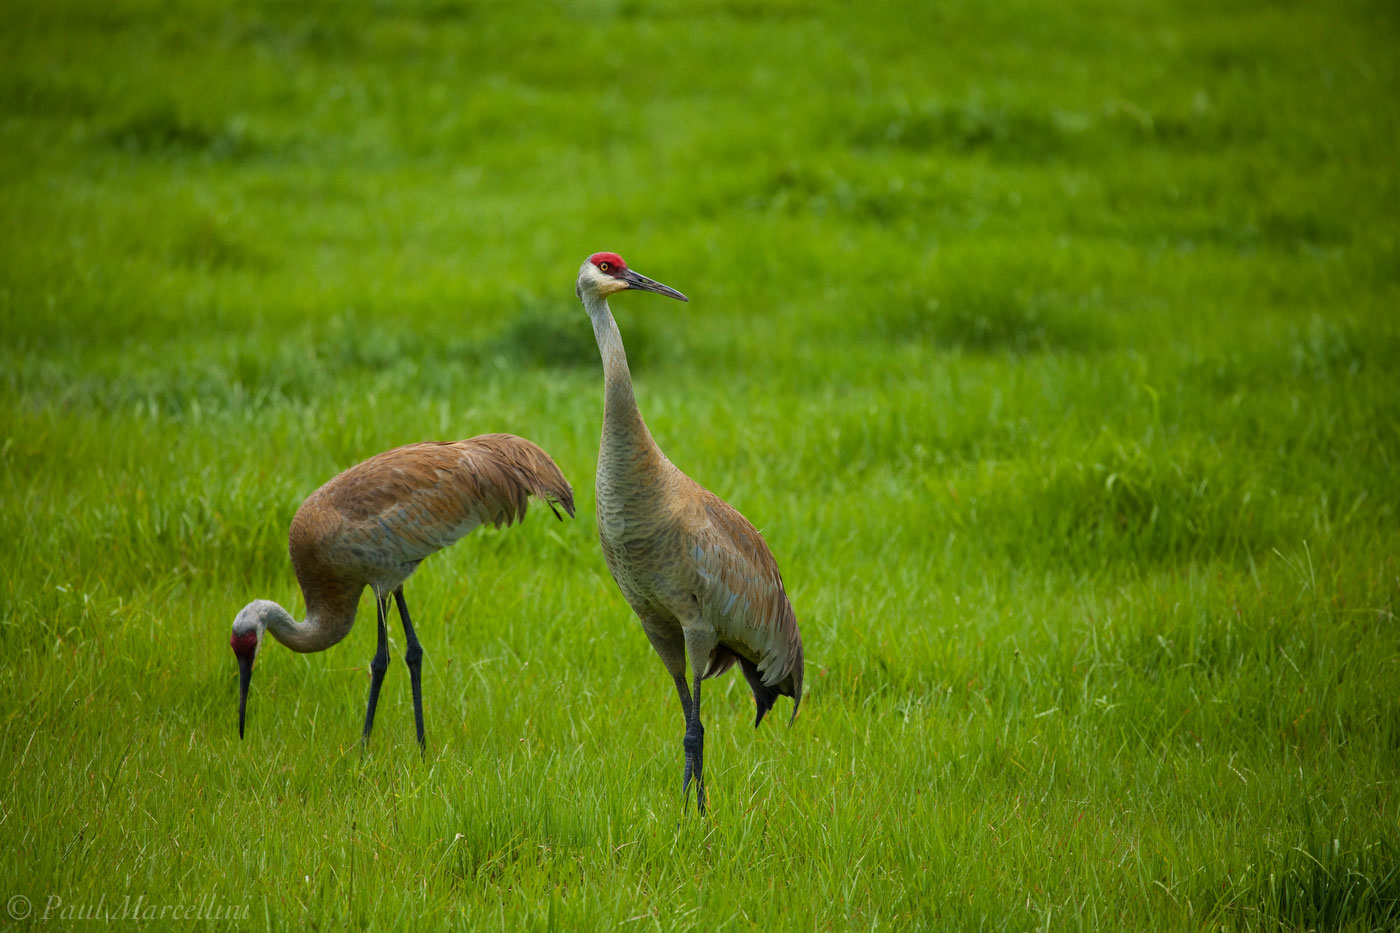 Sandhill Crane, Grus canadensis, hillsborough county, florida, hillsborough, photo